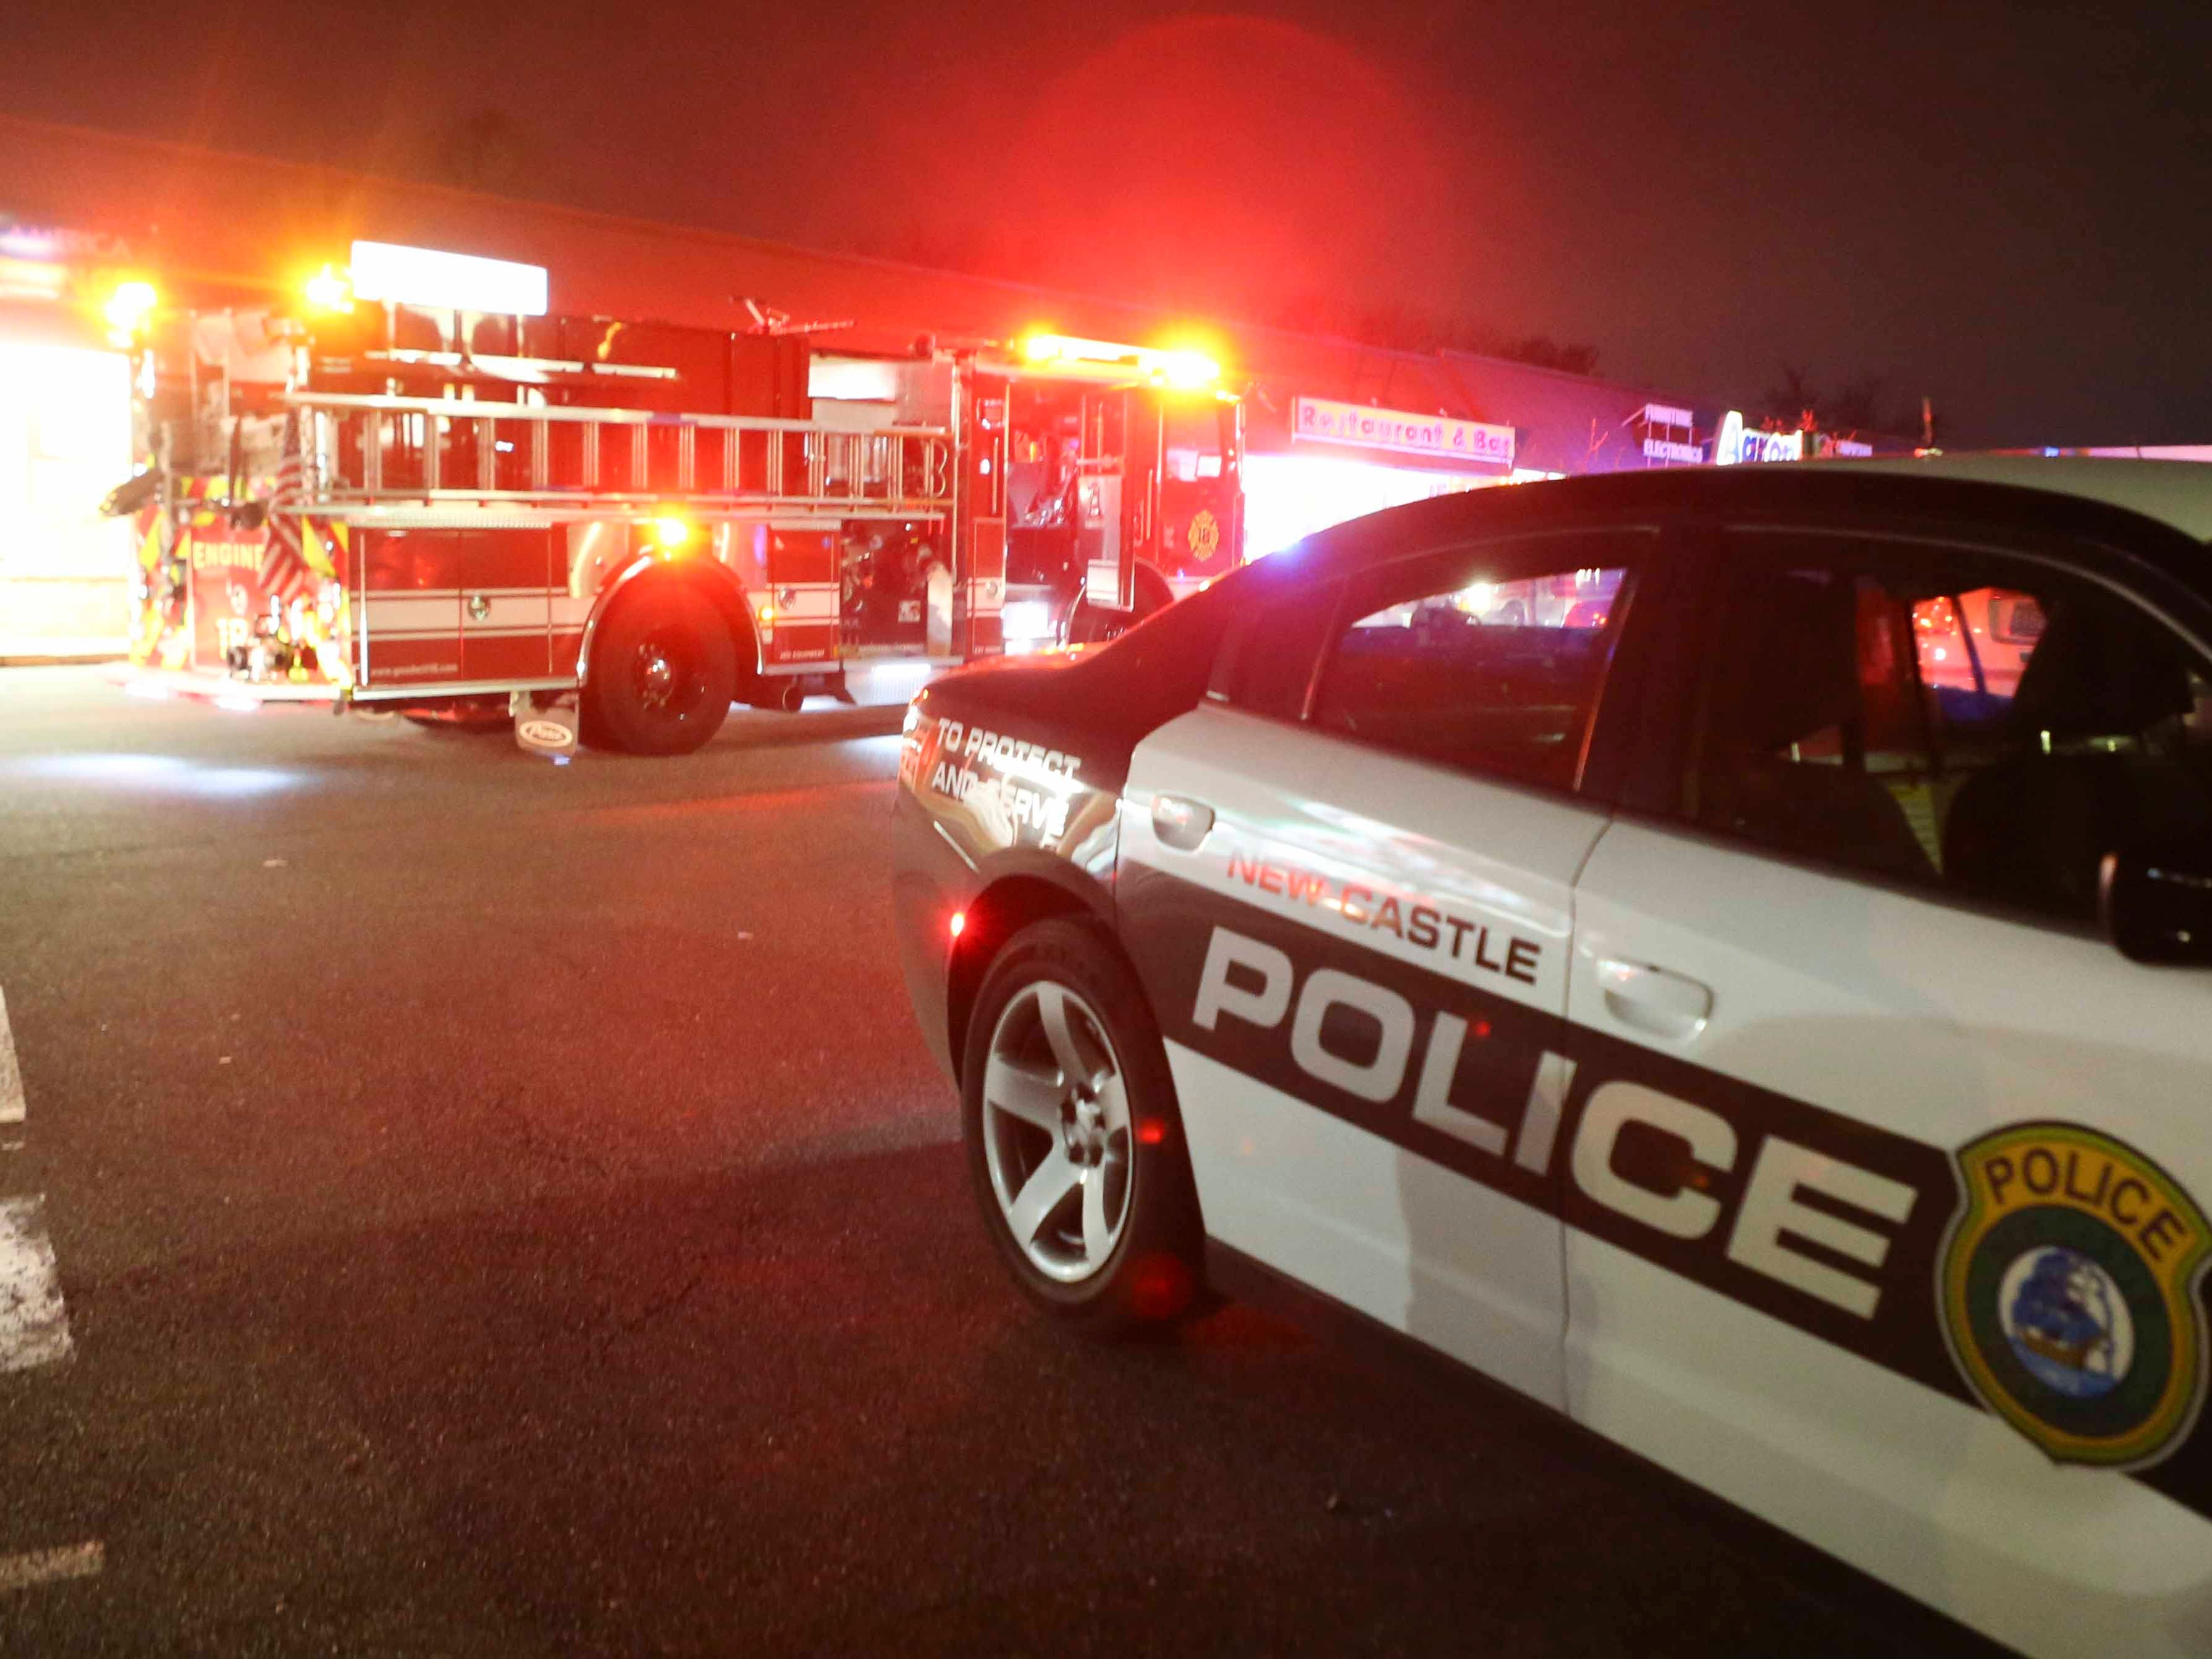 Emergency personnel tend to woman struck and pinned against a storefront wall outside Casa Mariachi restaurant and bar shortly about 11:10 p.m. Friday.